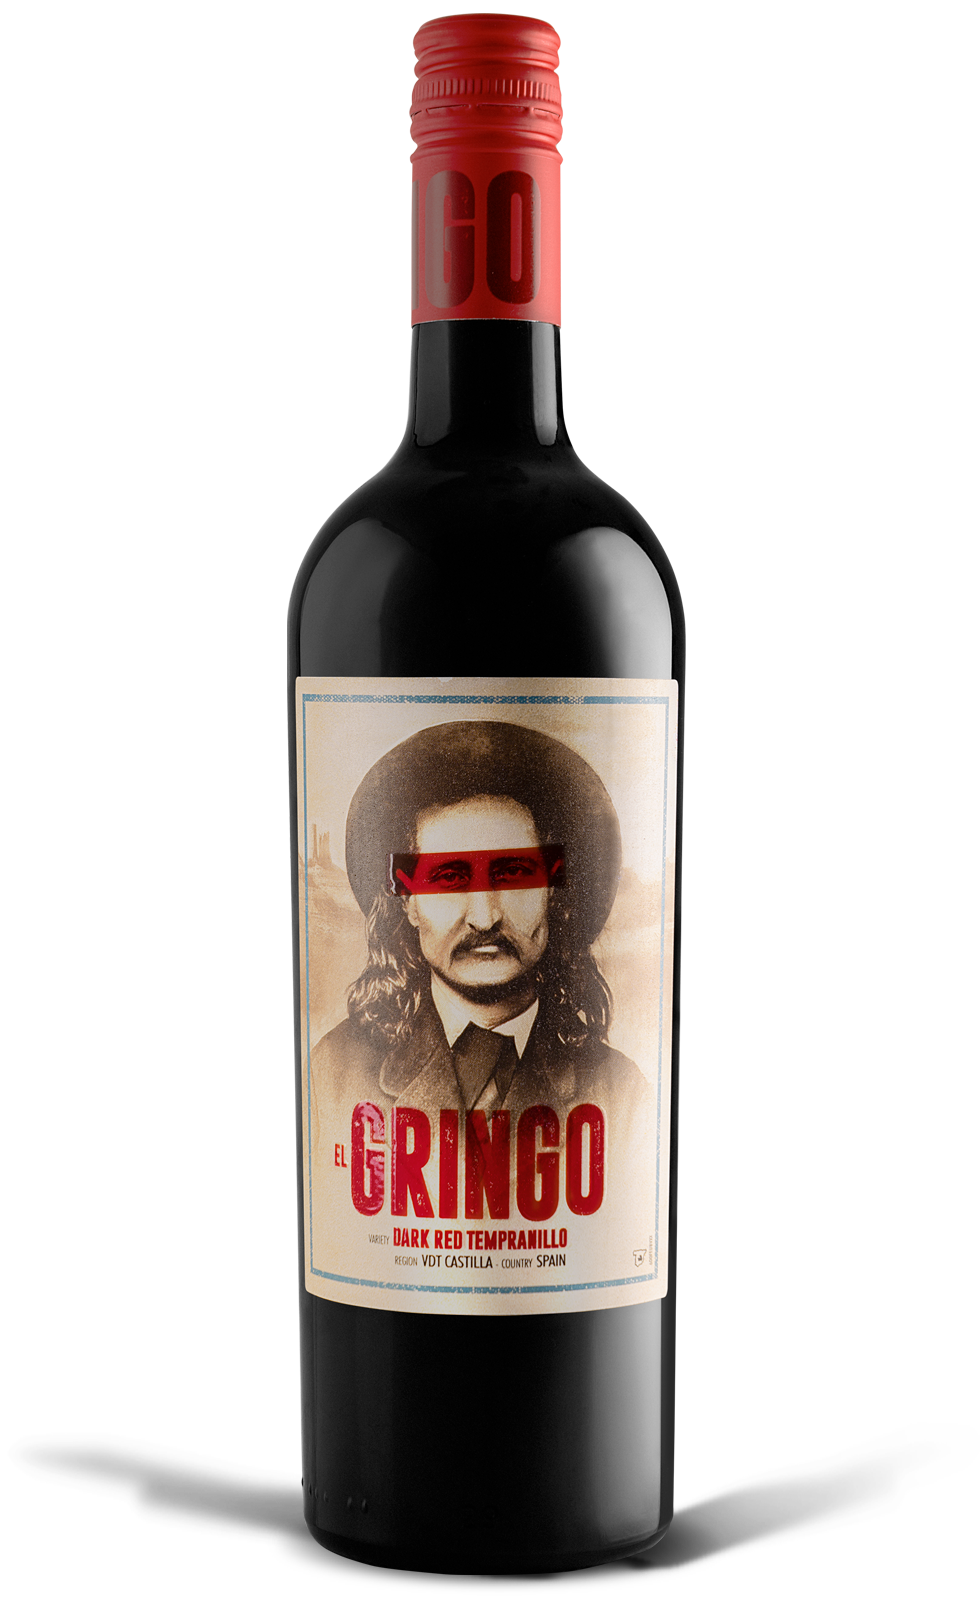 The bottle of red wine tempranillo El Gringo, a young wine with a clean aroma and ruby color - deep purple